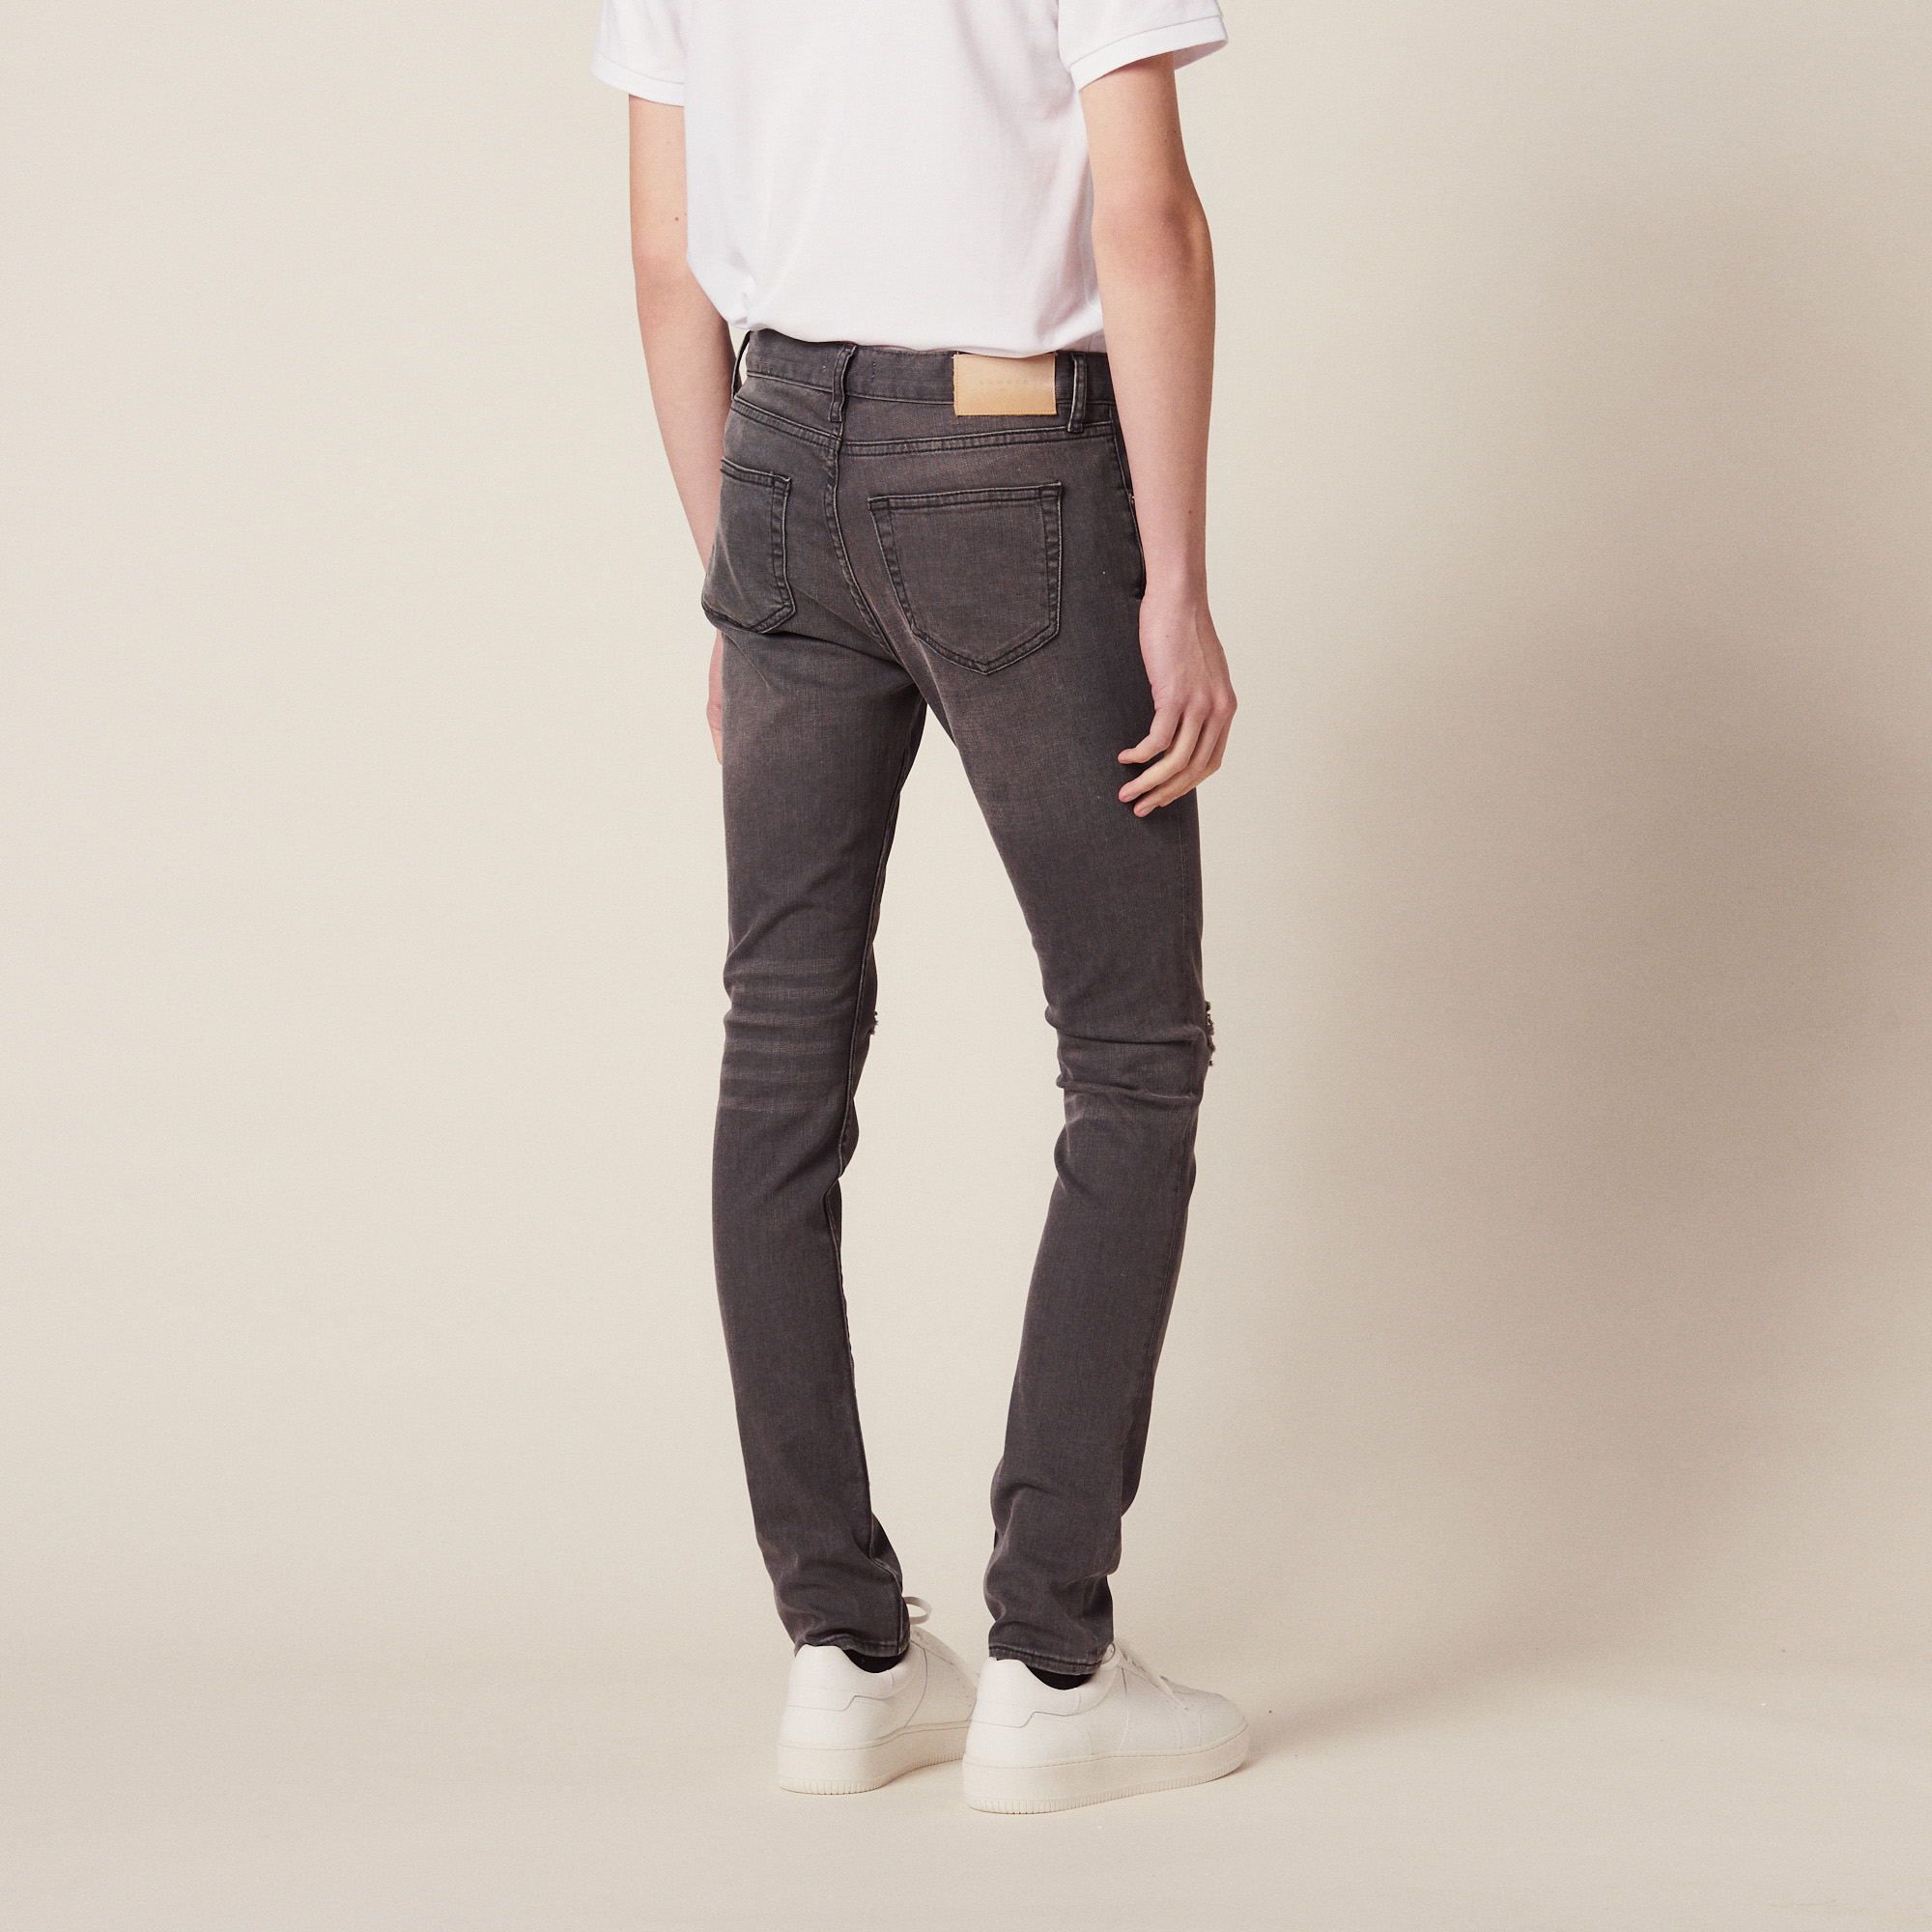 Jeans Destroy - Skinny : Jeans colore Grigio